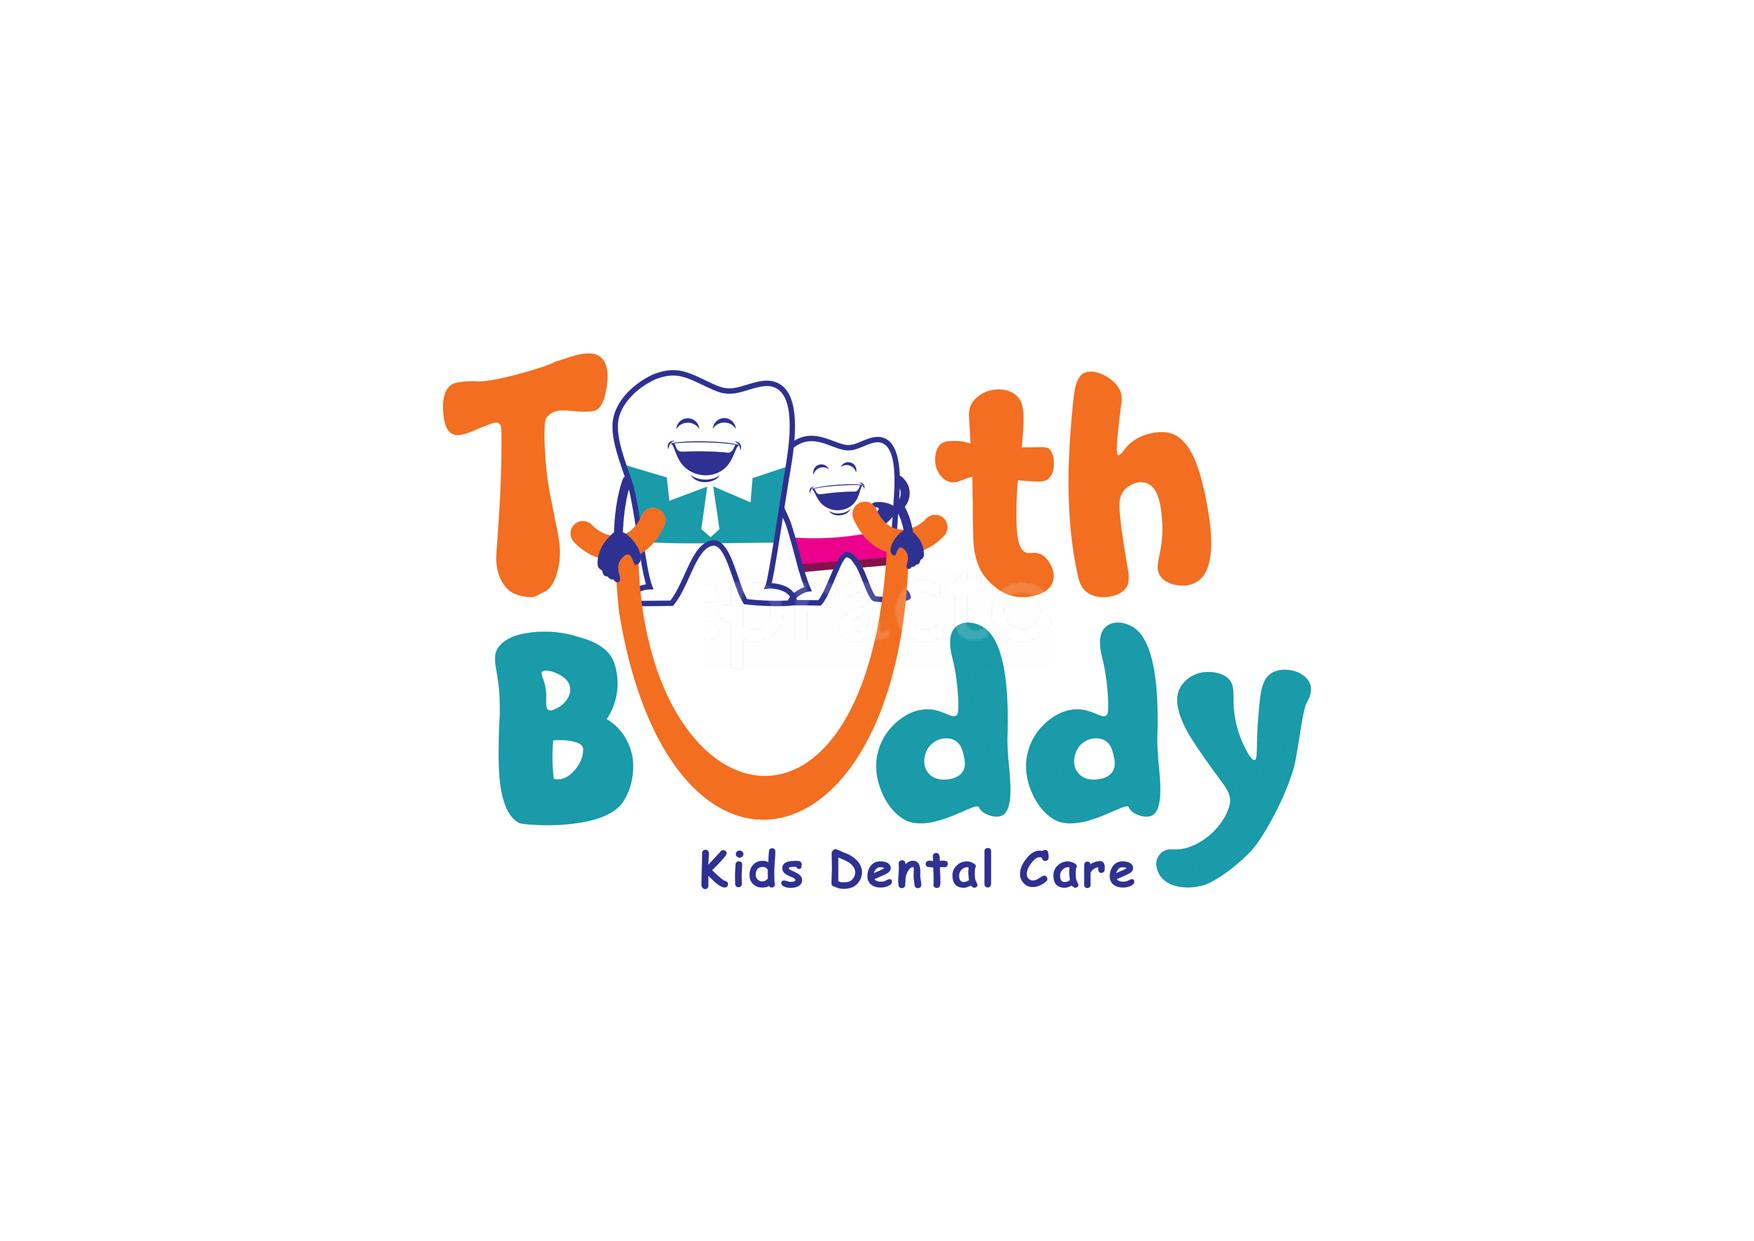 Tooth Buddy Kids Dental Care